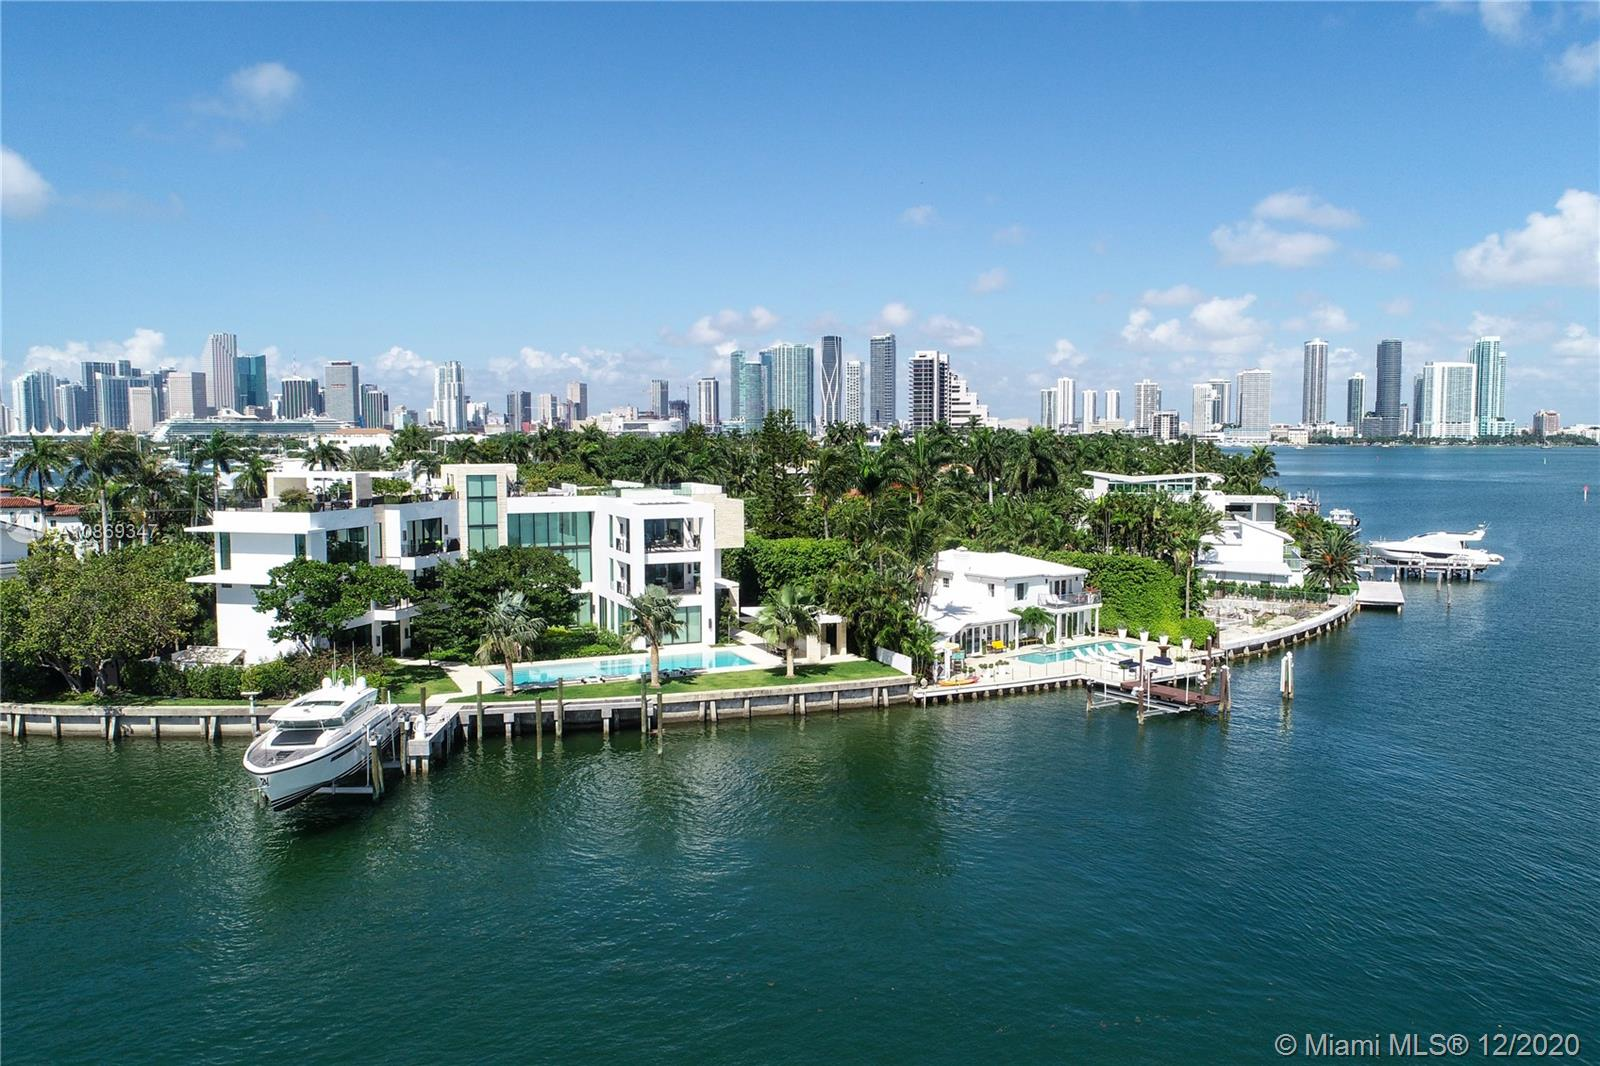 Photo of 1429 N Venetian Way, Miami, FL 33139